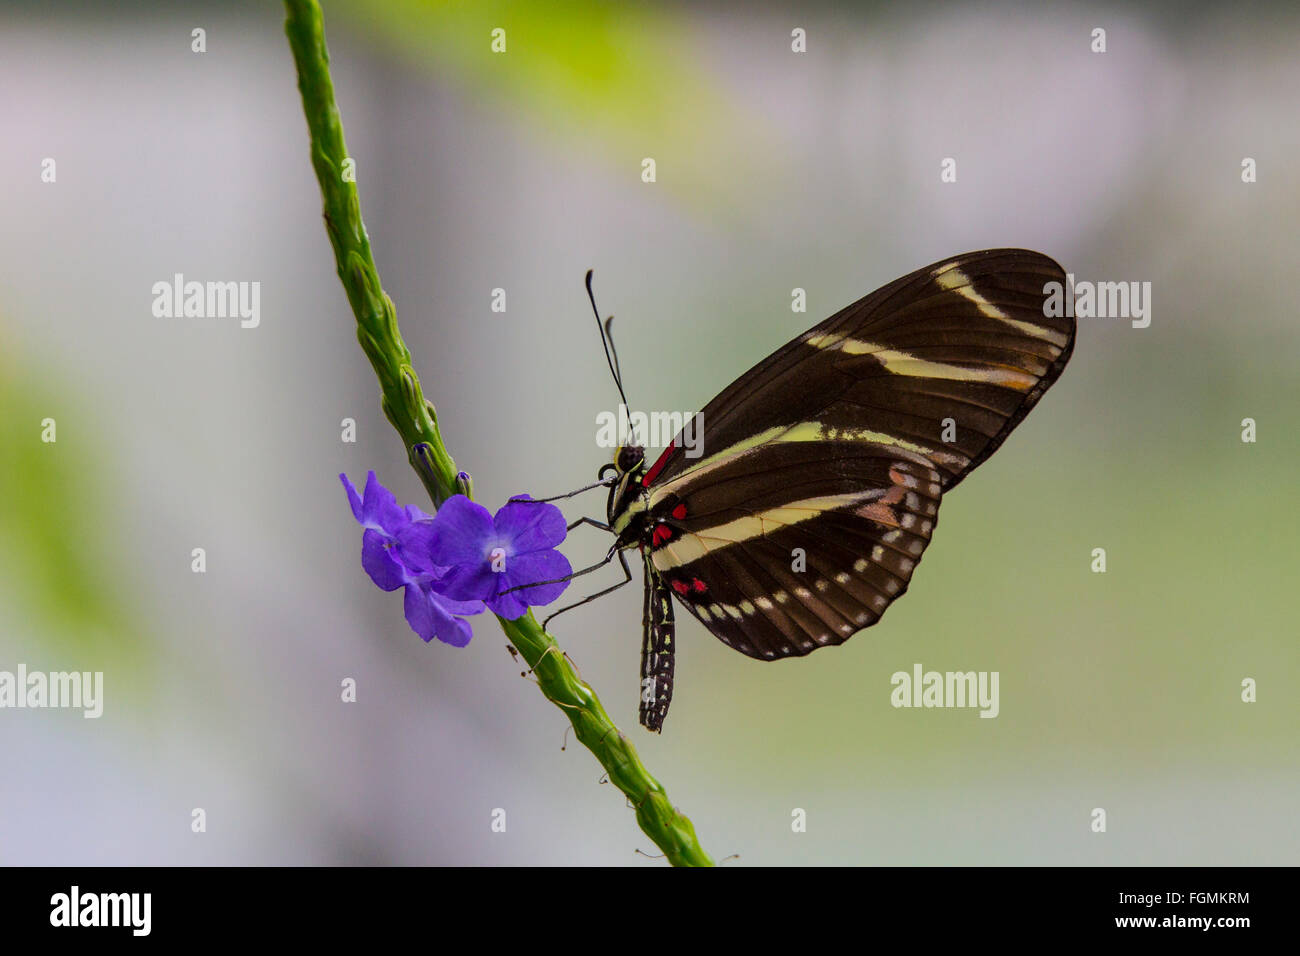 Zebra Longwing Butterfly  Heliconius charitonia on a flower at The Butterfly Estates in Fort Myers Florida - Stock Image